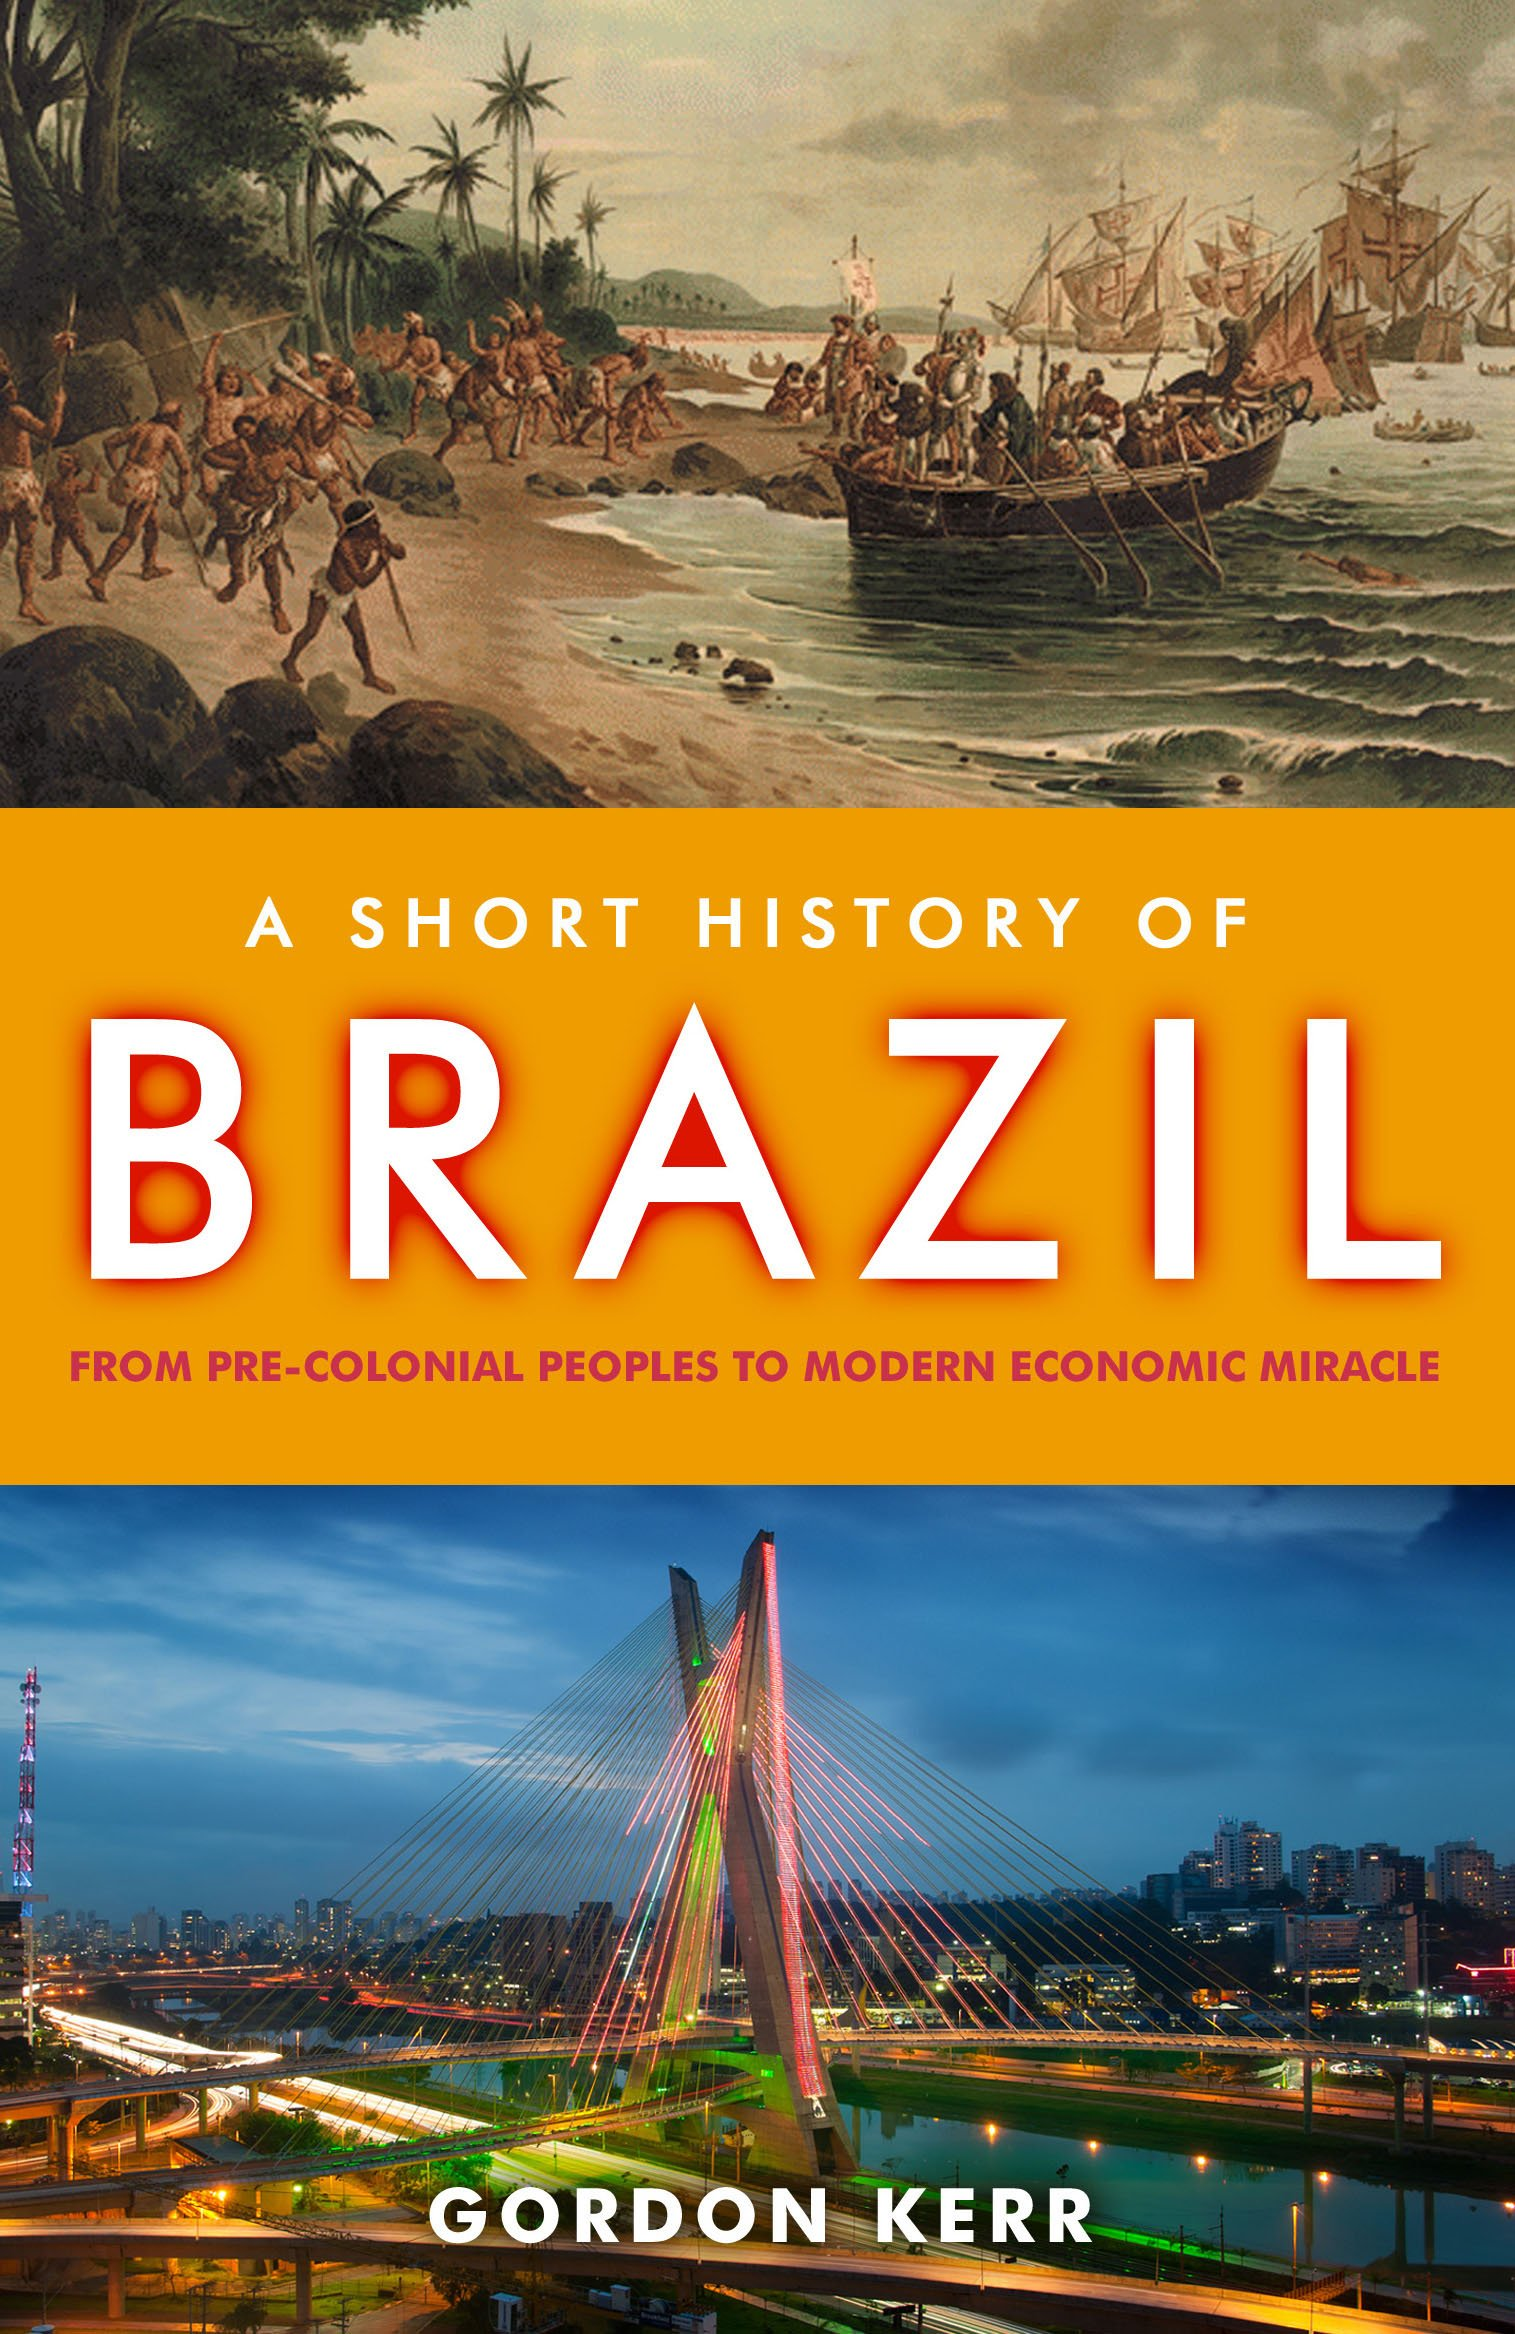 a-short-history-of-brazil-from-pre-colonial-peoples-to-modern-economic-miracle